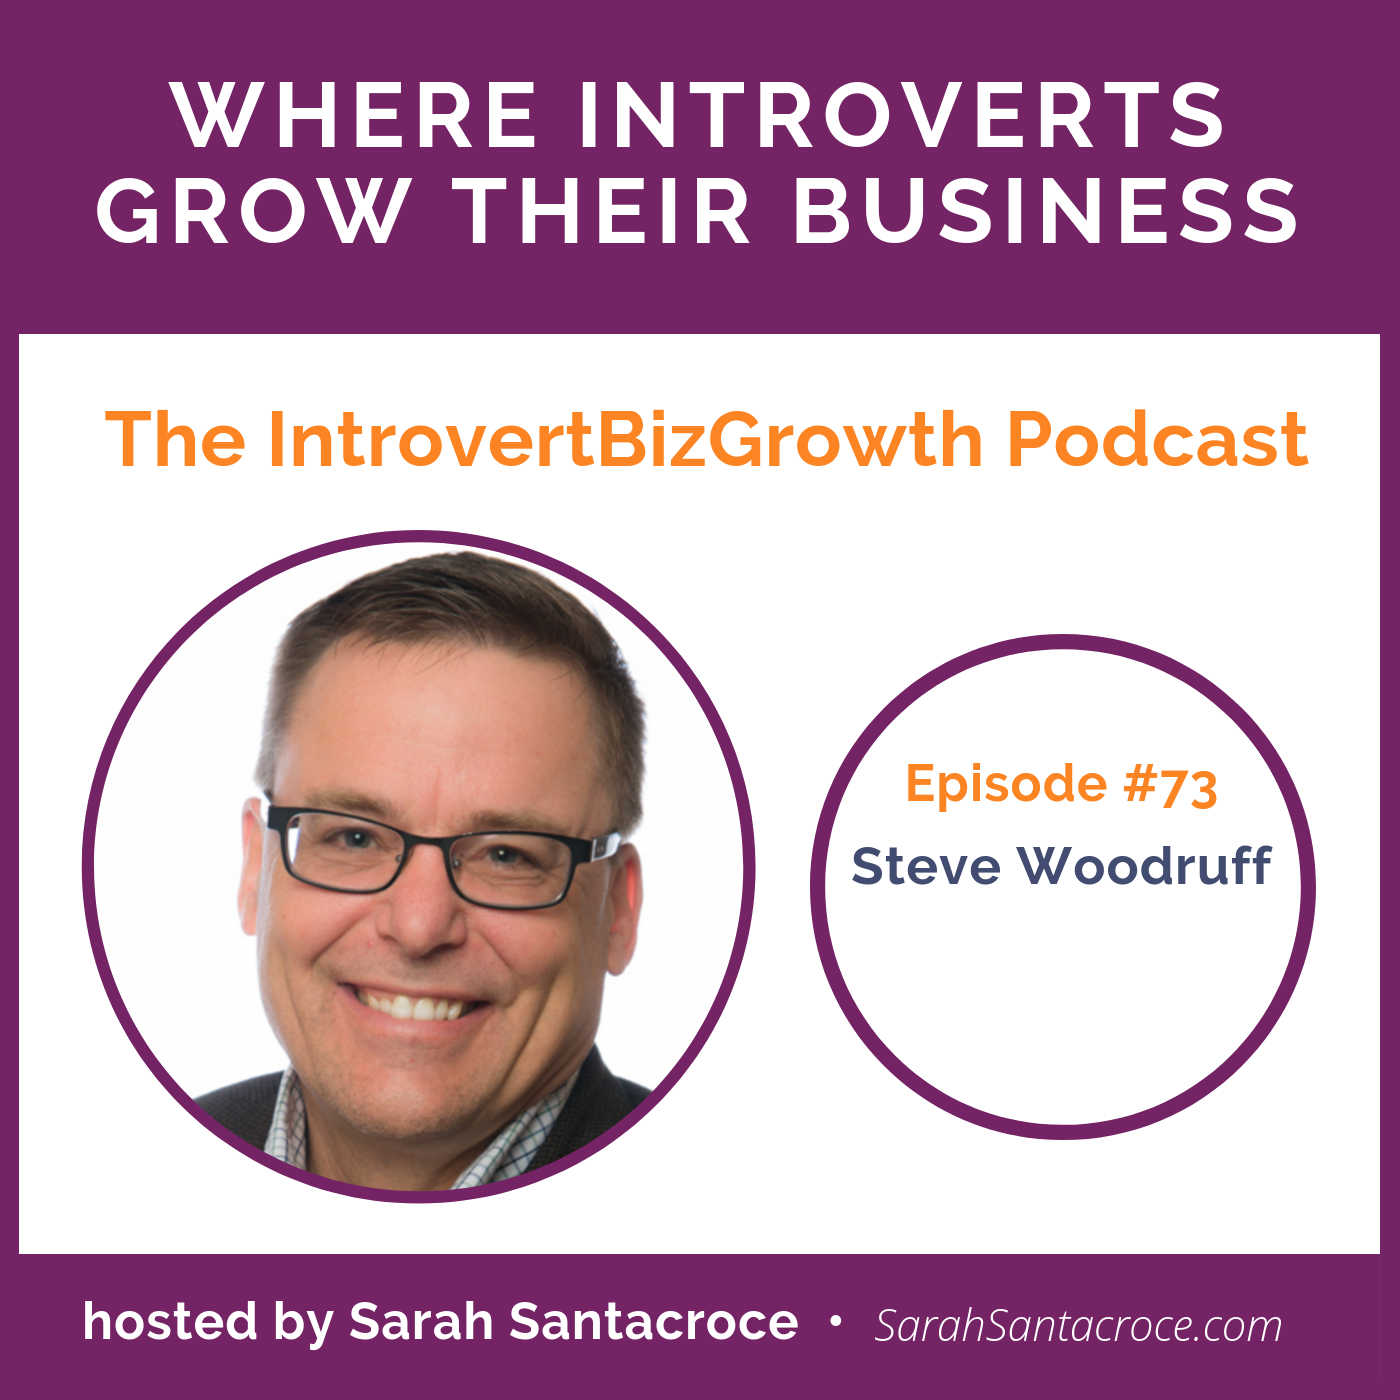 Standing Out as an Introverted Entrepreneur